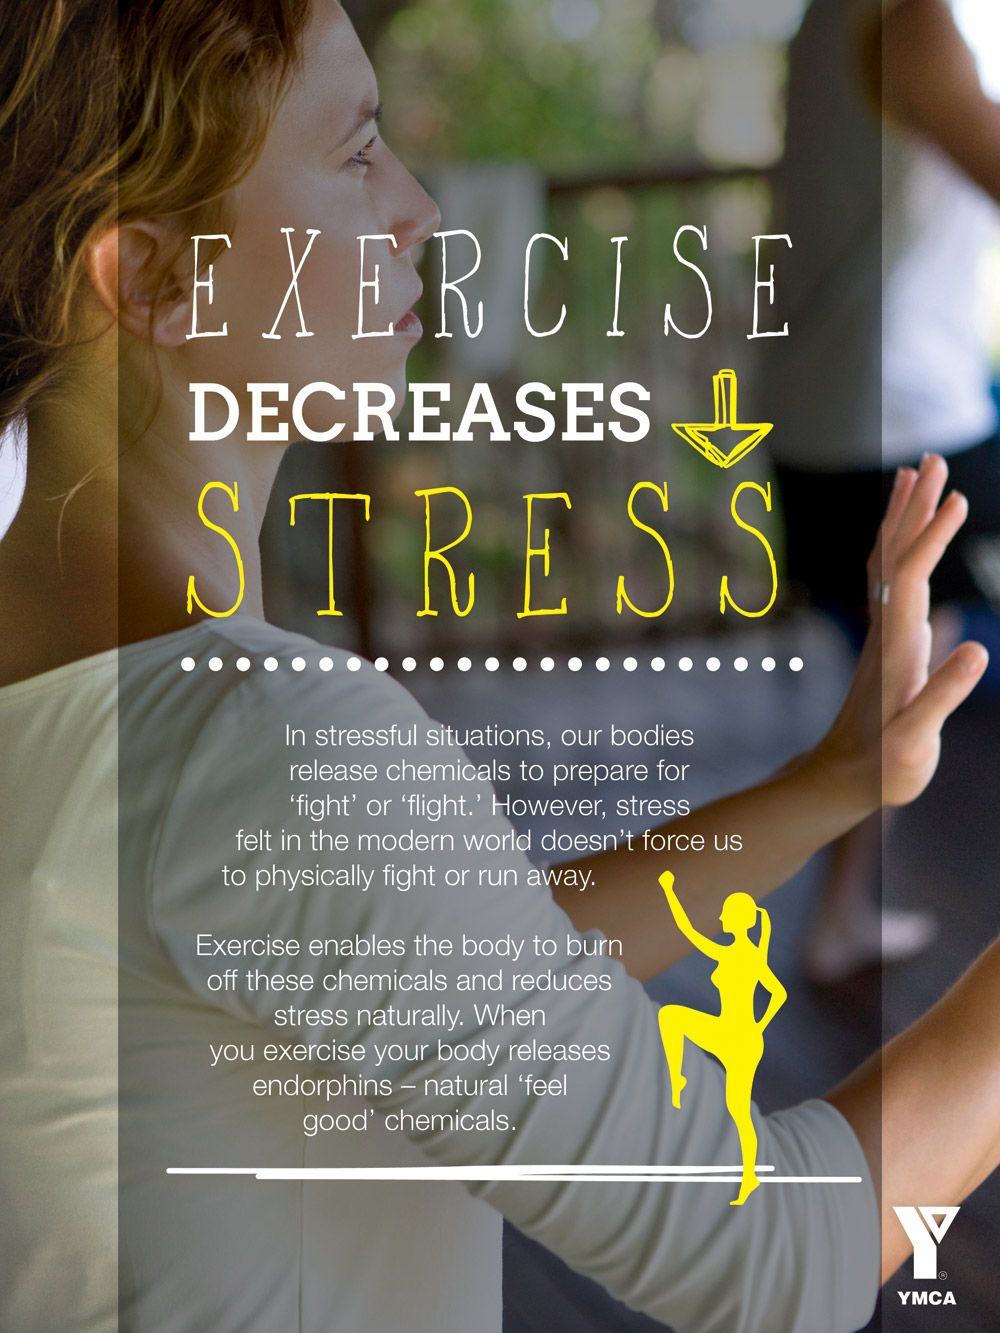 Did you know that exercise decreases stress? We can help